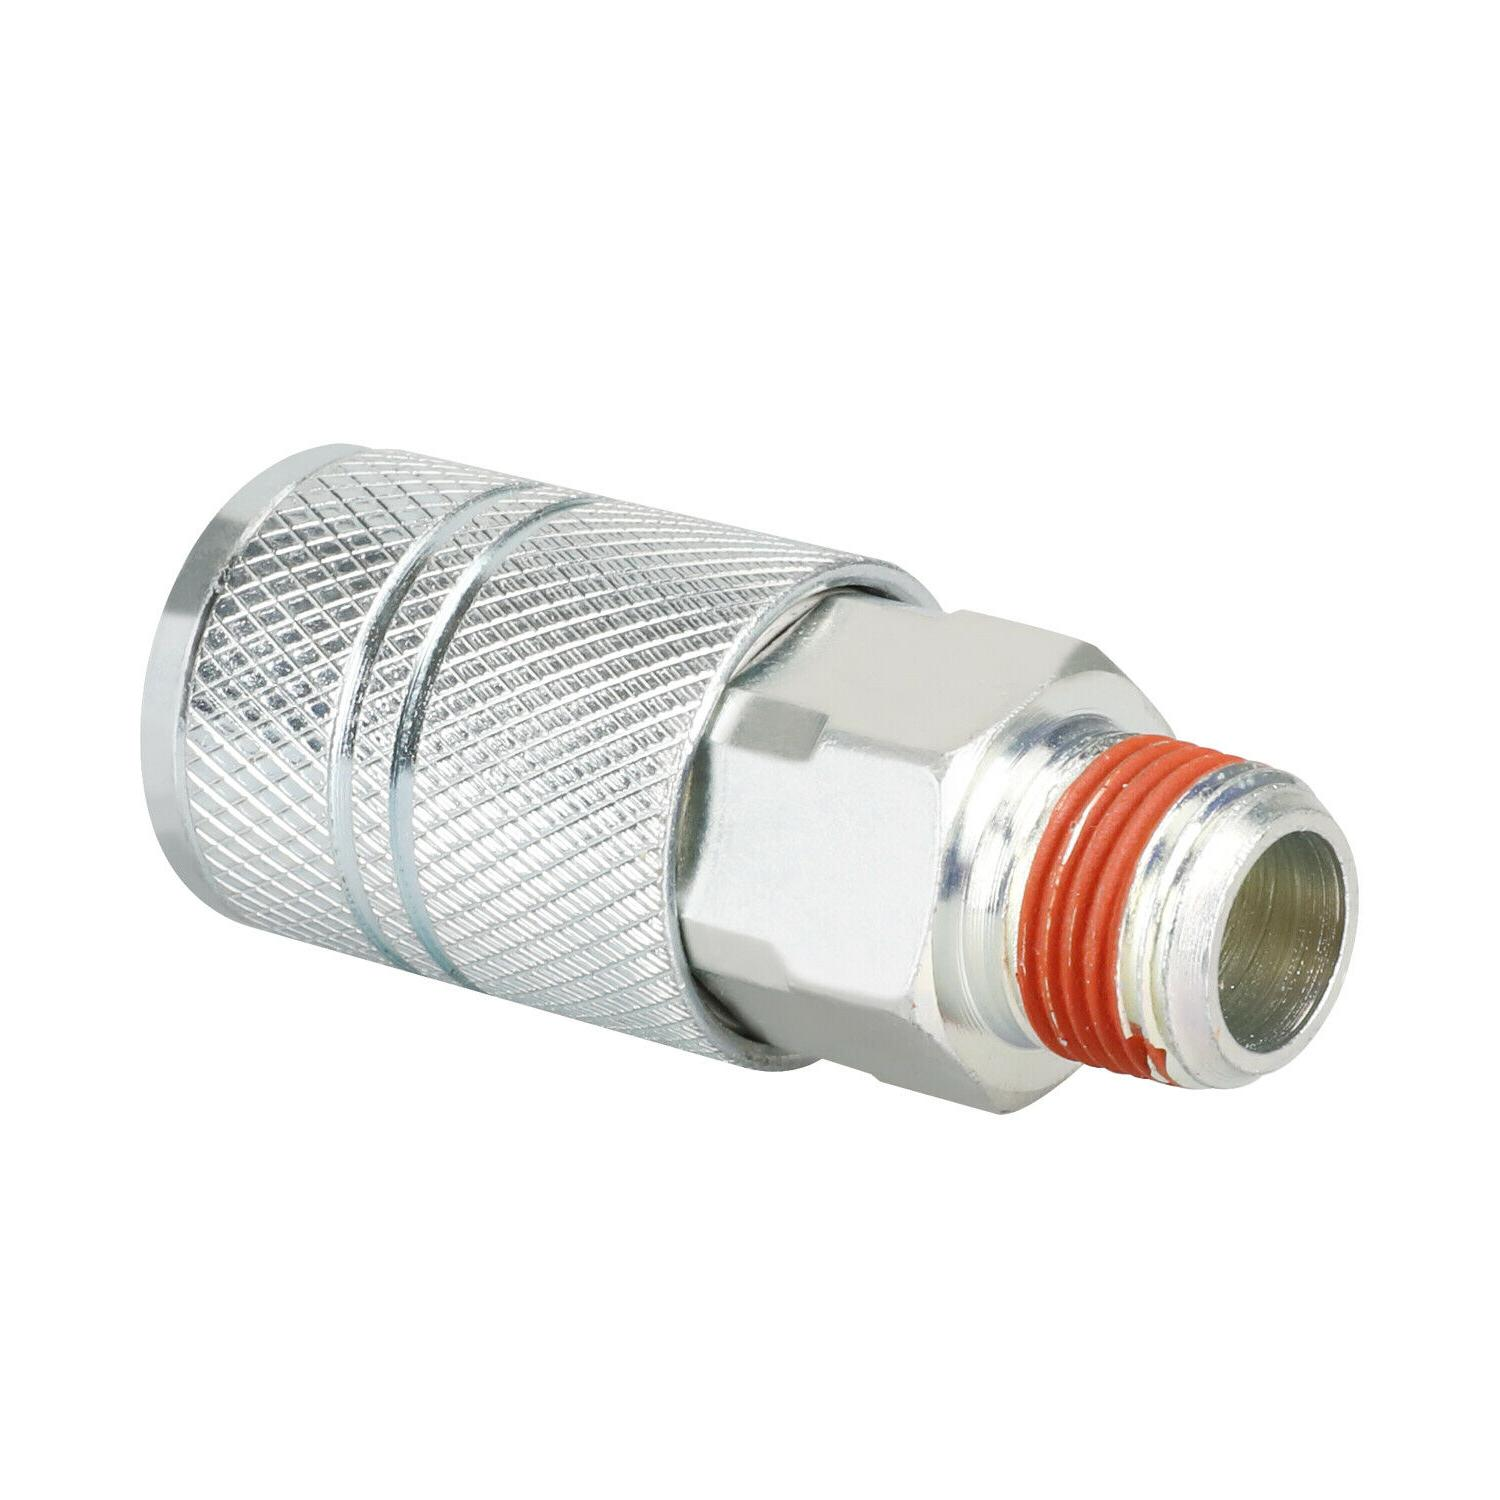 WYNNsky Air Tool Quick-Connect Fitting,Industrial 3/8''FNPT